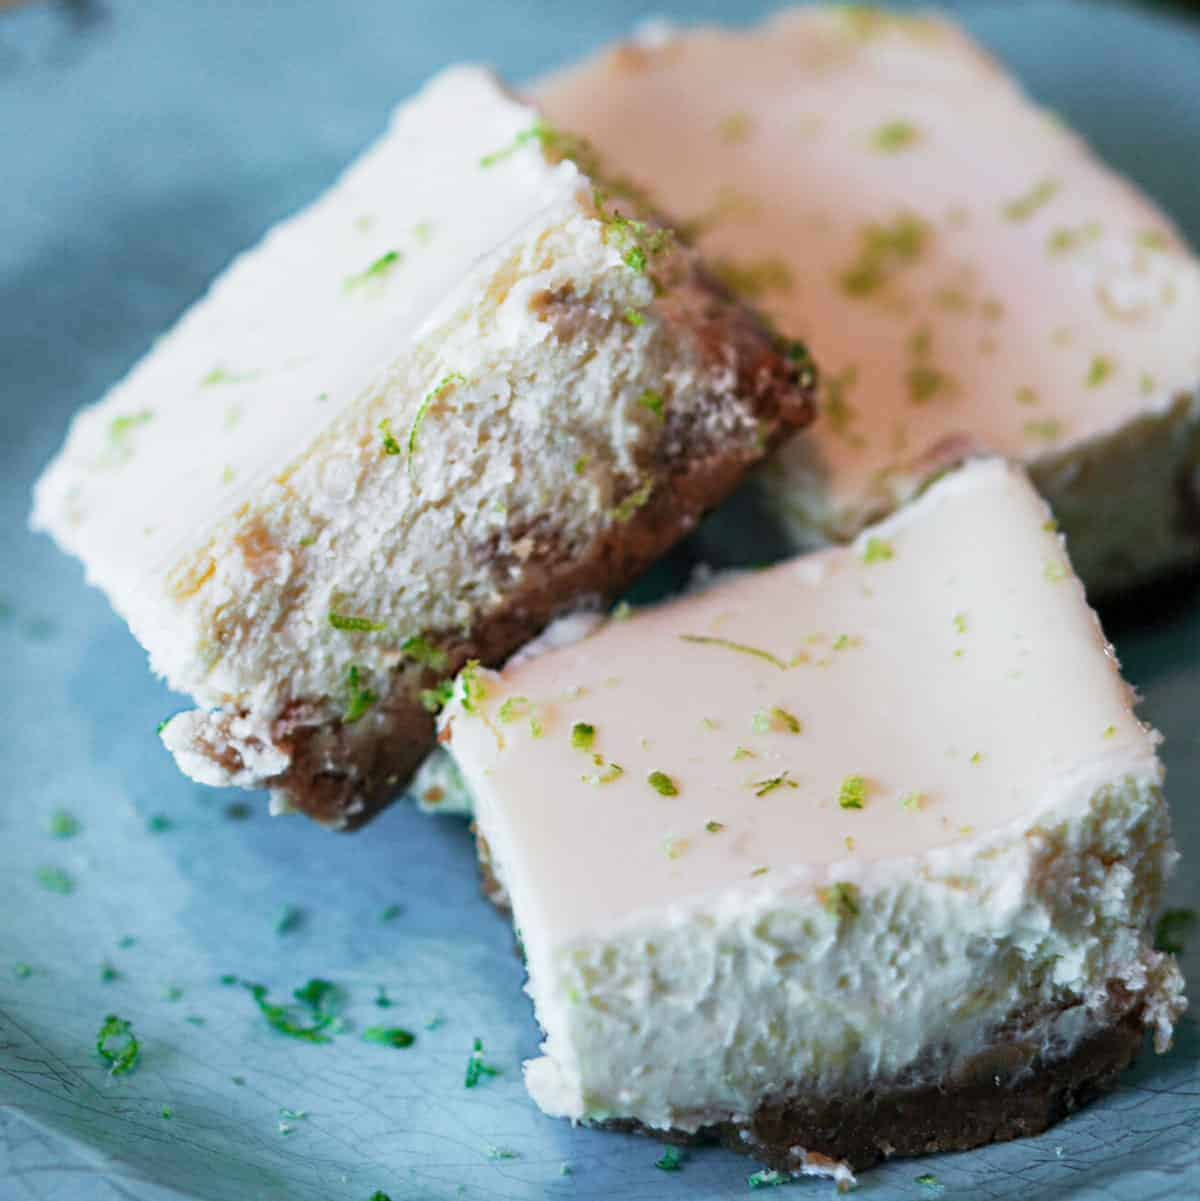 Key lime Cheesecake bars with flacks of lime zest on a blue plate.